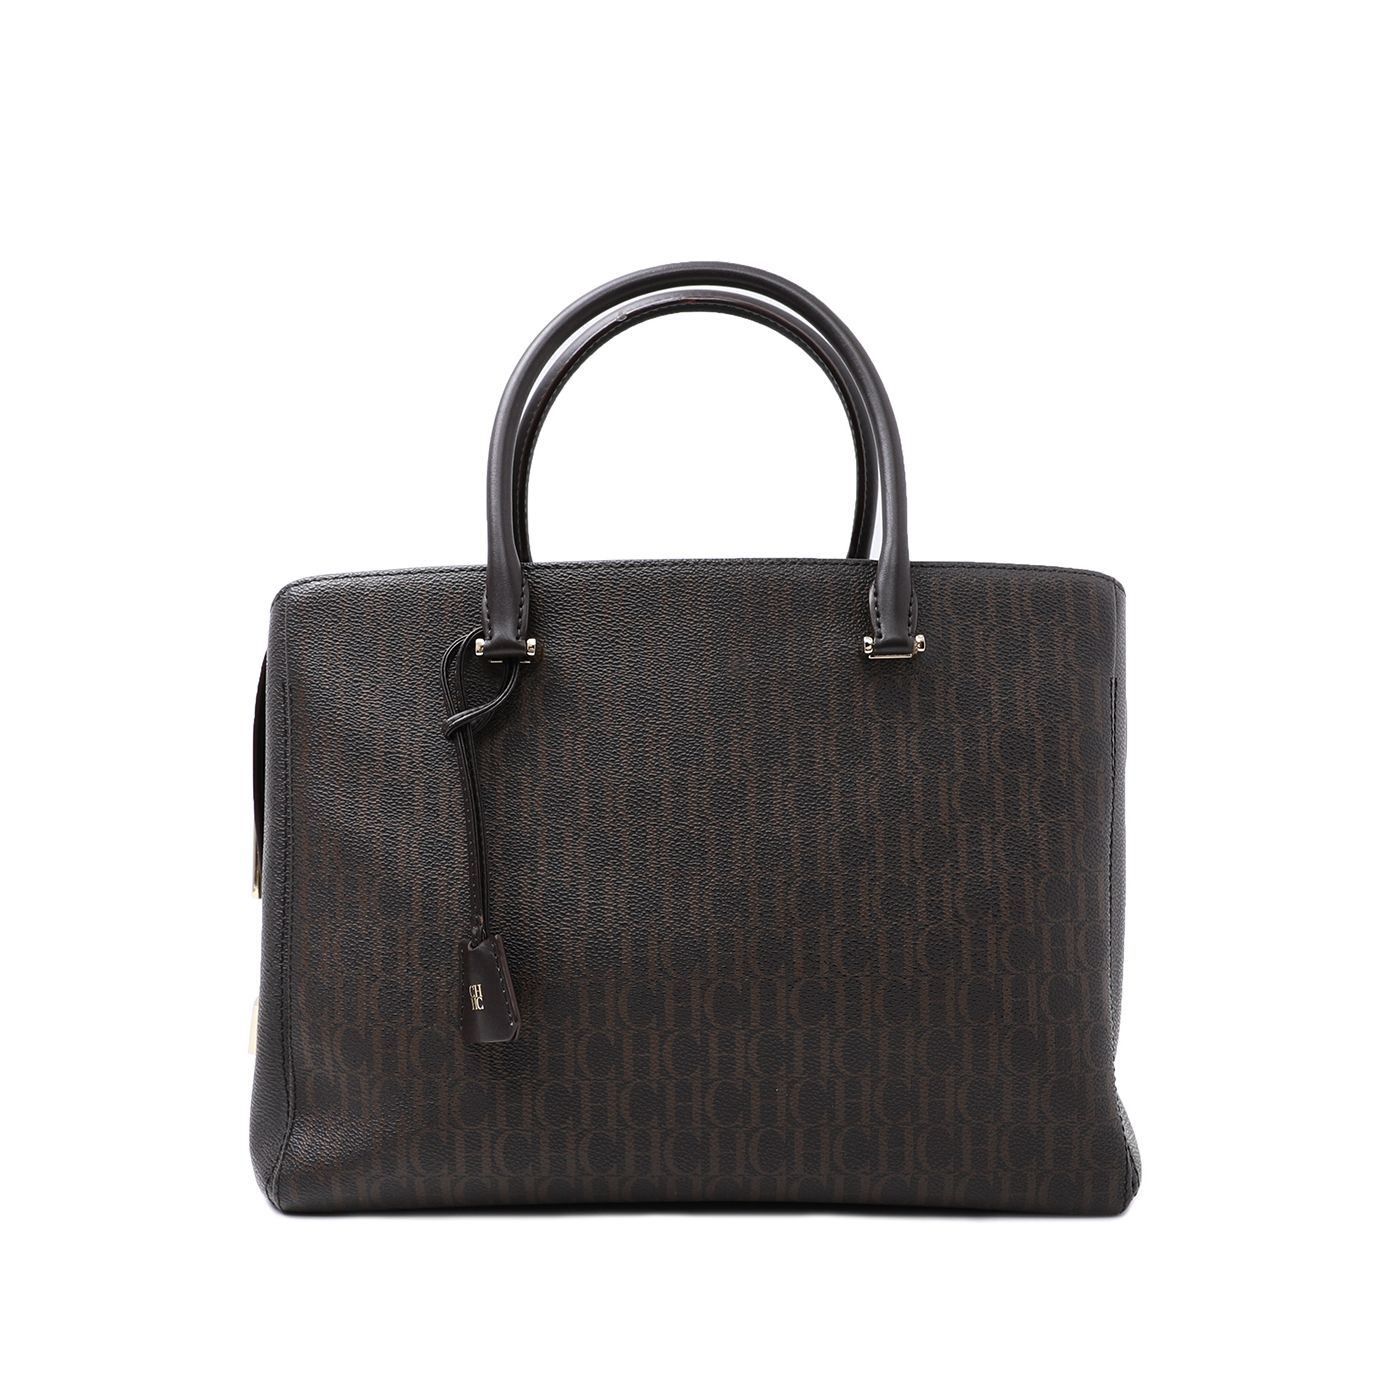 Carolina Herrera Dark Brown Monogram Padlock Top Handle Tote Bag